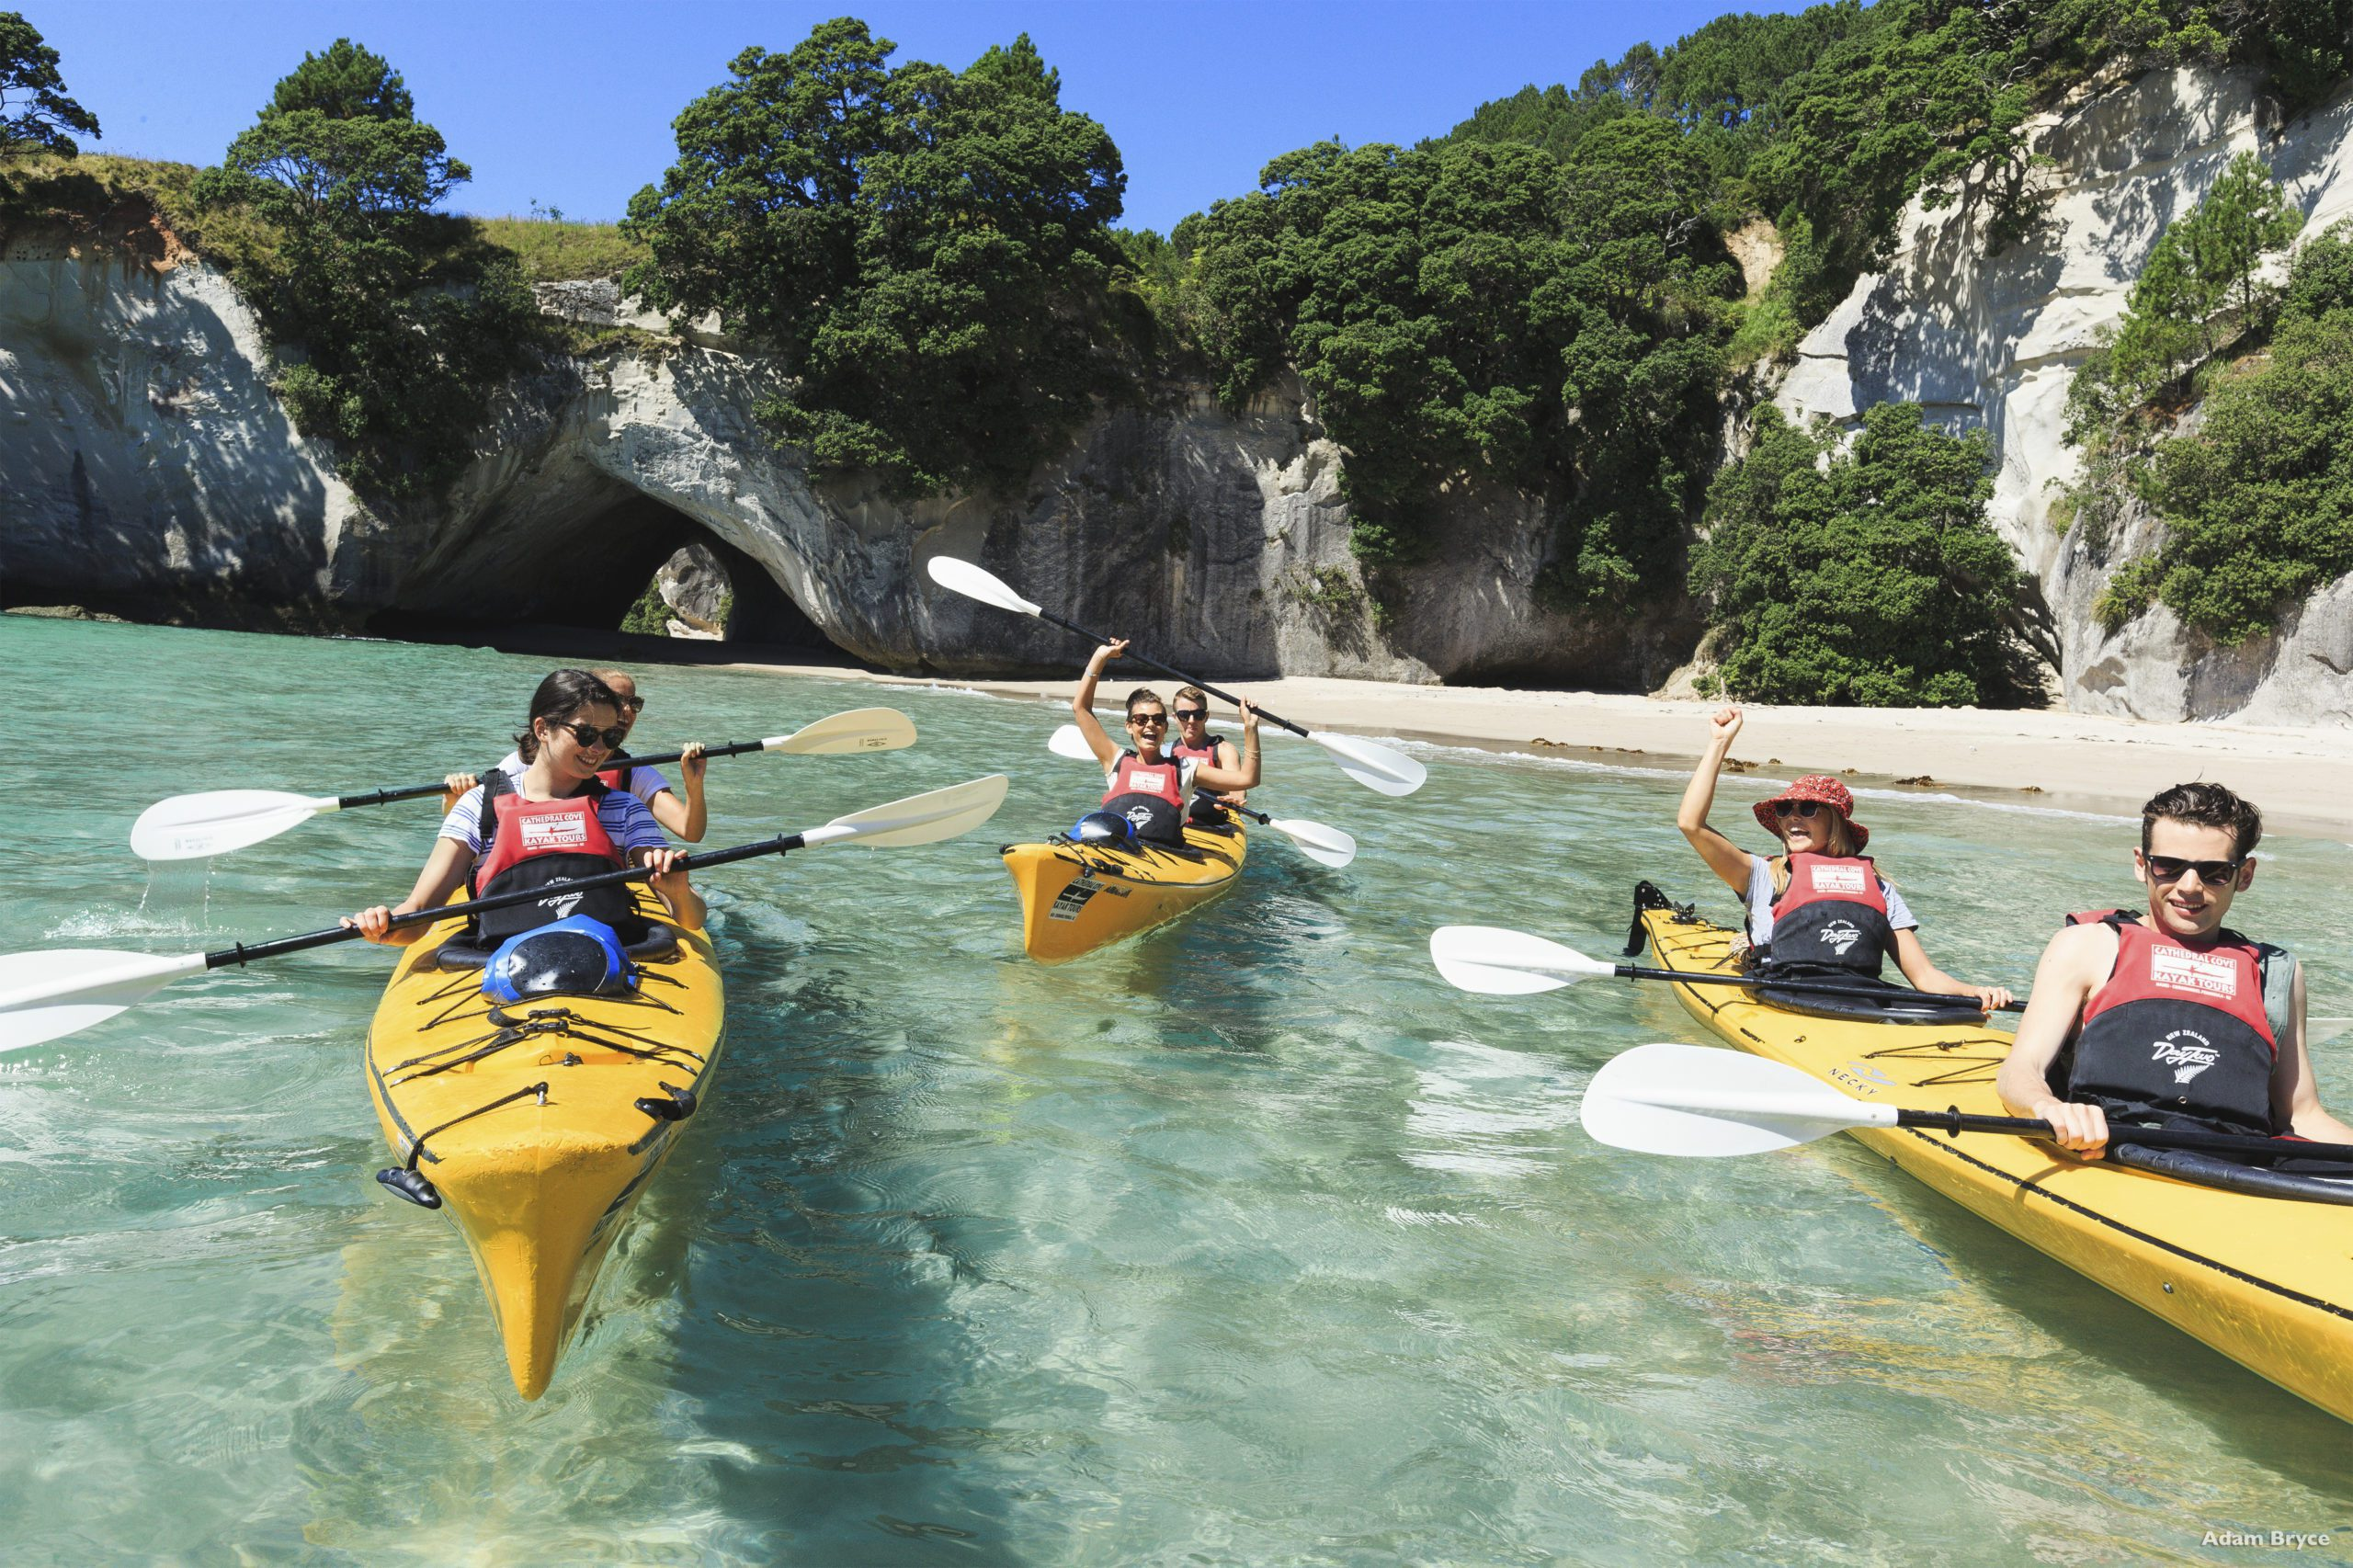 A group kayaking in the clear waters below some cliff faces in Coromandel.